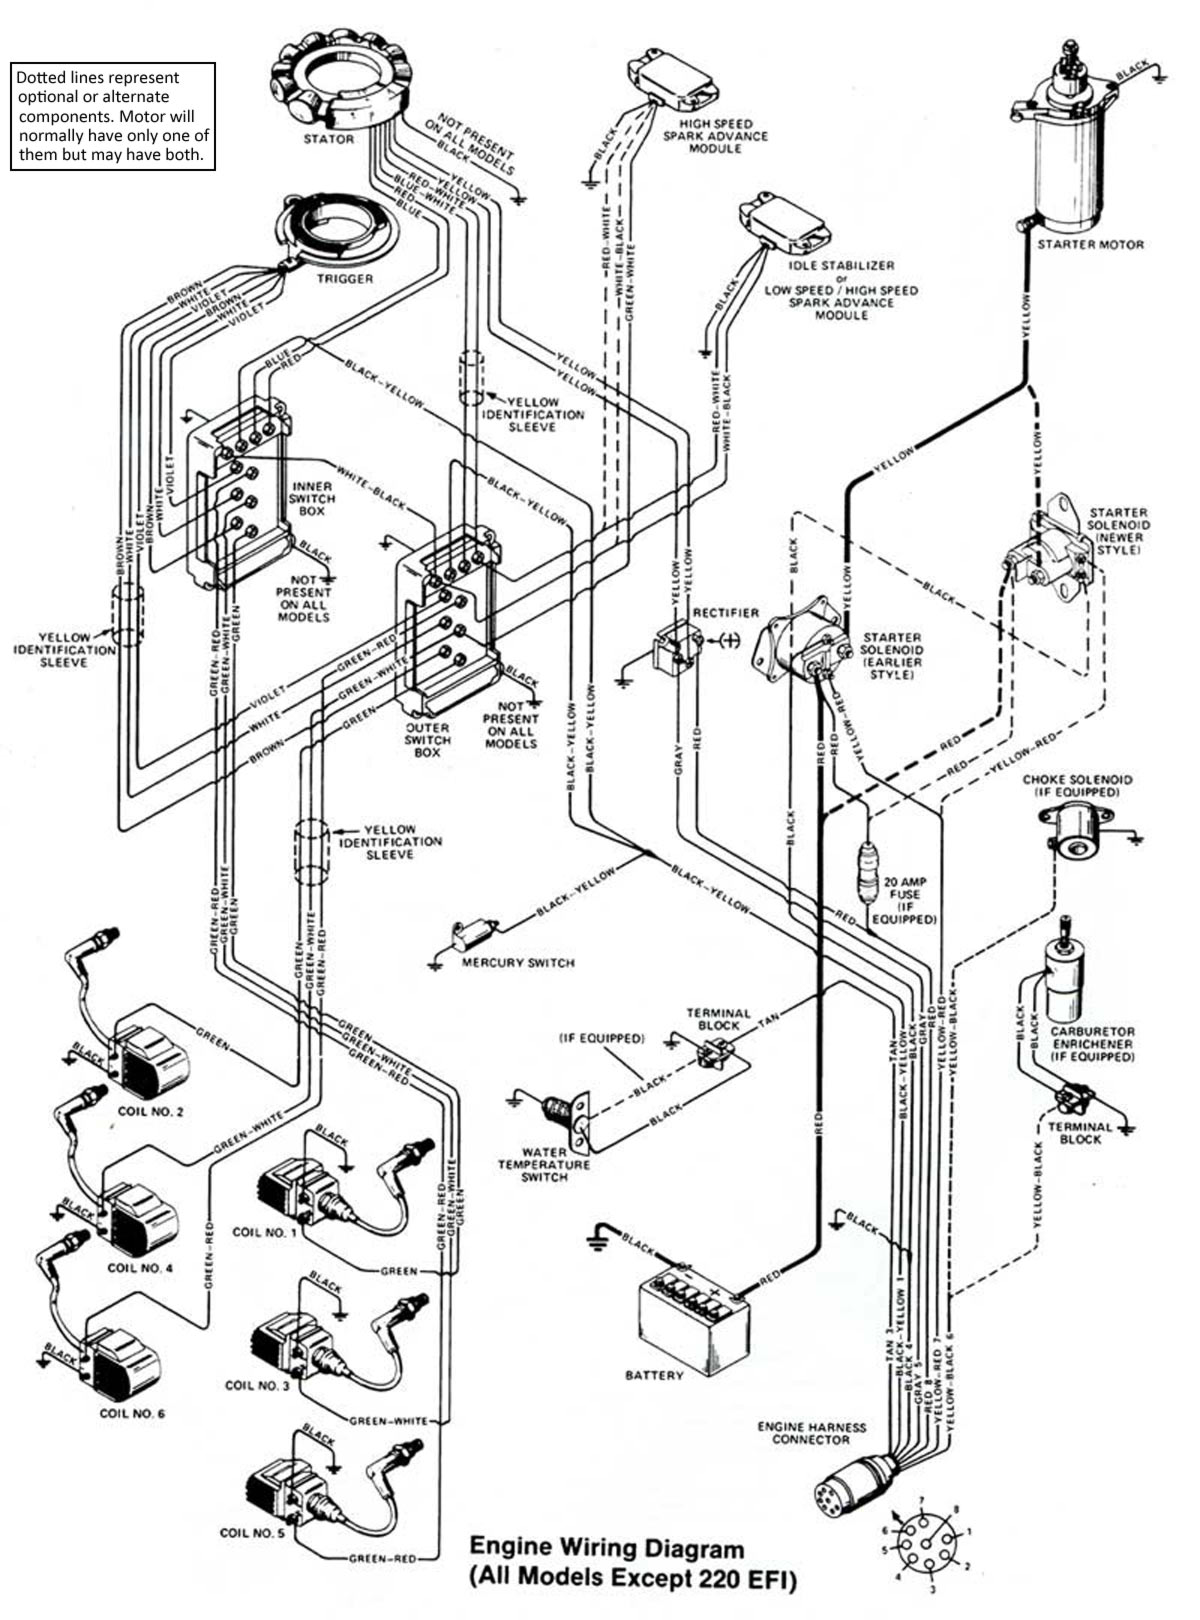 Yamaha Wiring Diagrams together with 763801 85 Fxwg Starter together with Flathead engine likewise Honda 3 2 Cylinder Diagram additionally Showthread. on 87 sportster wiring diagram